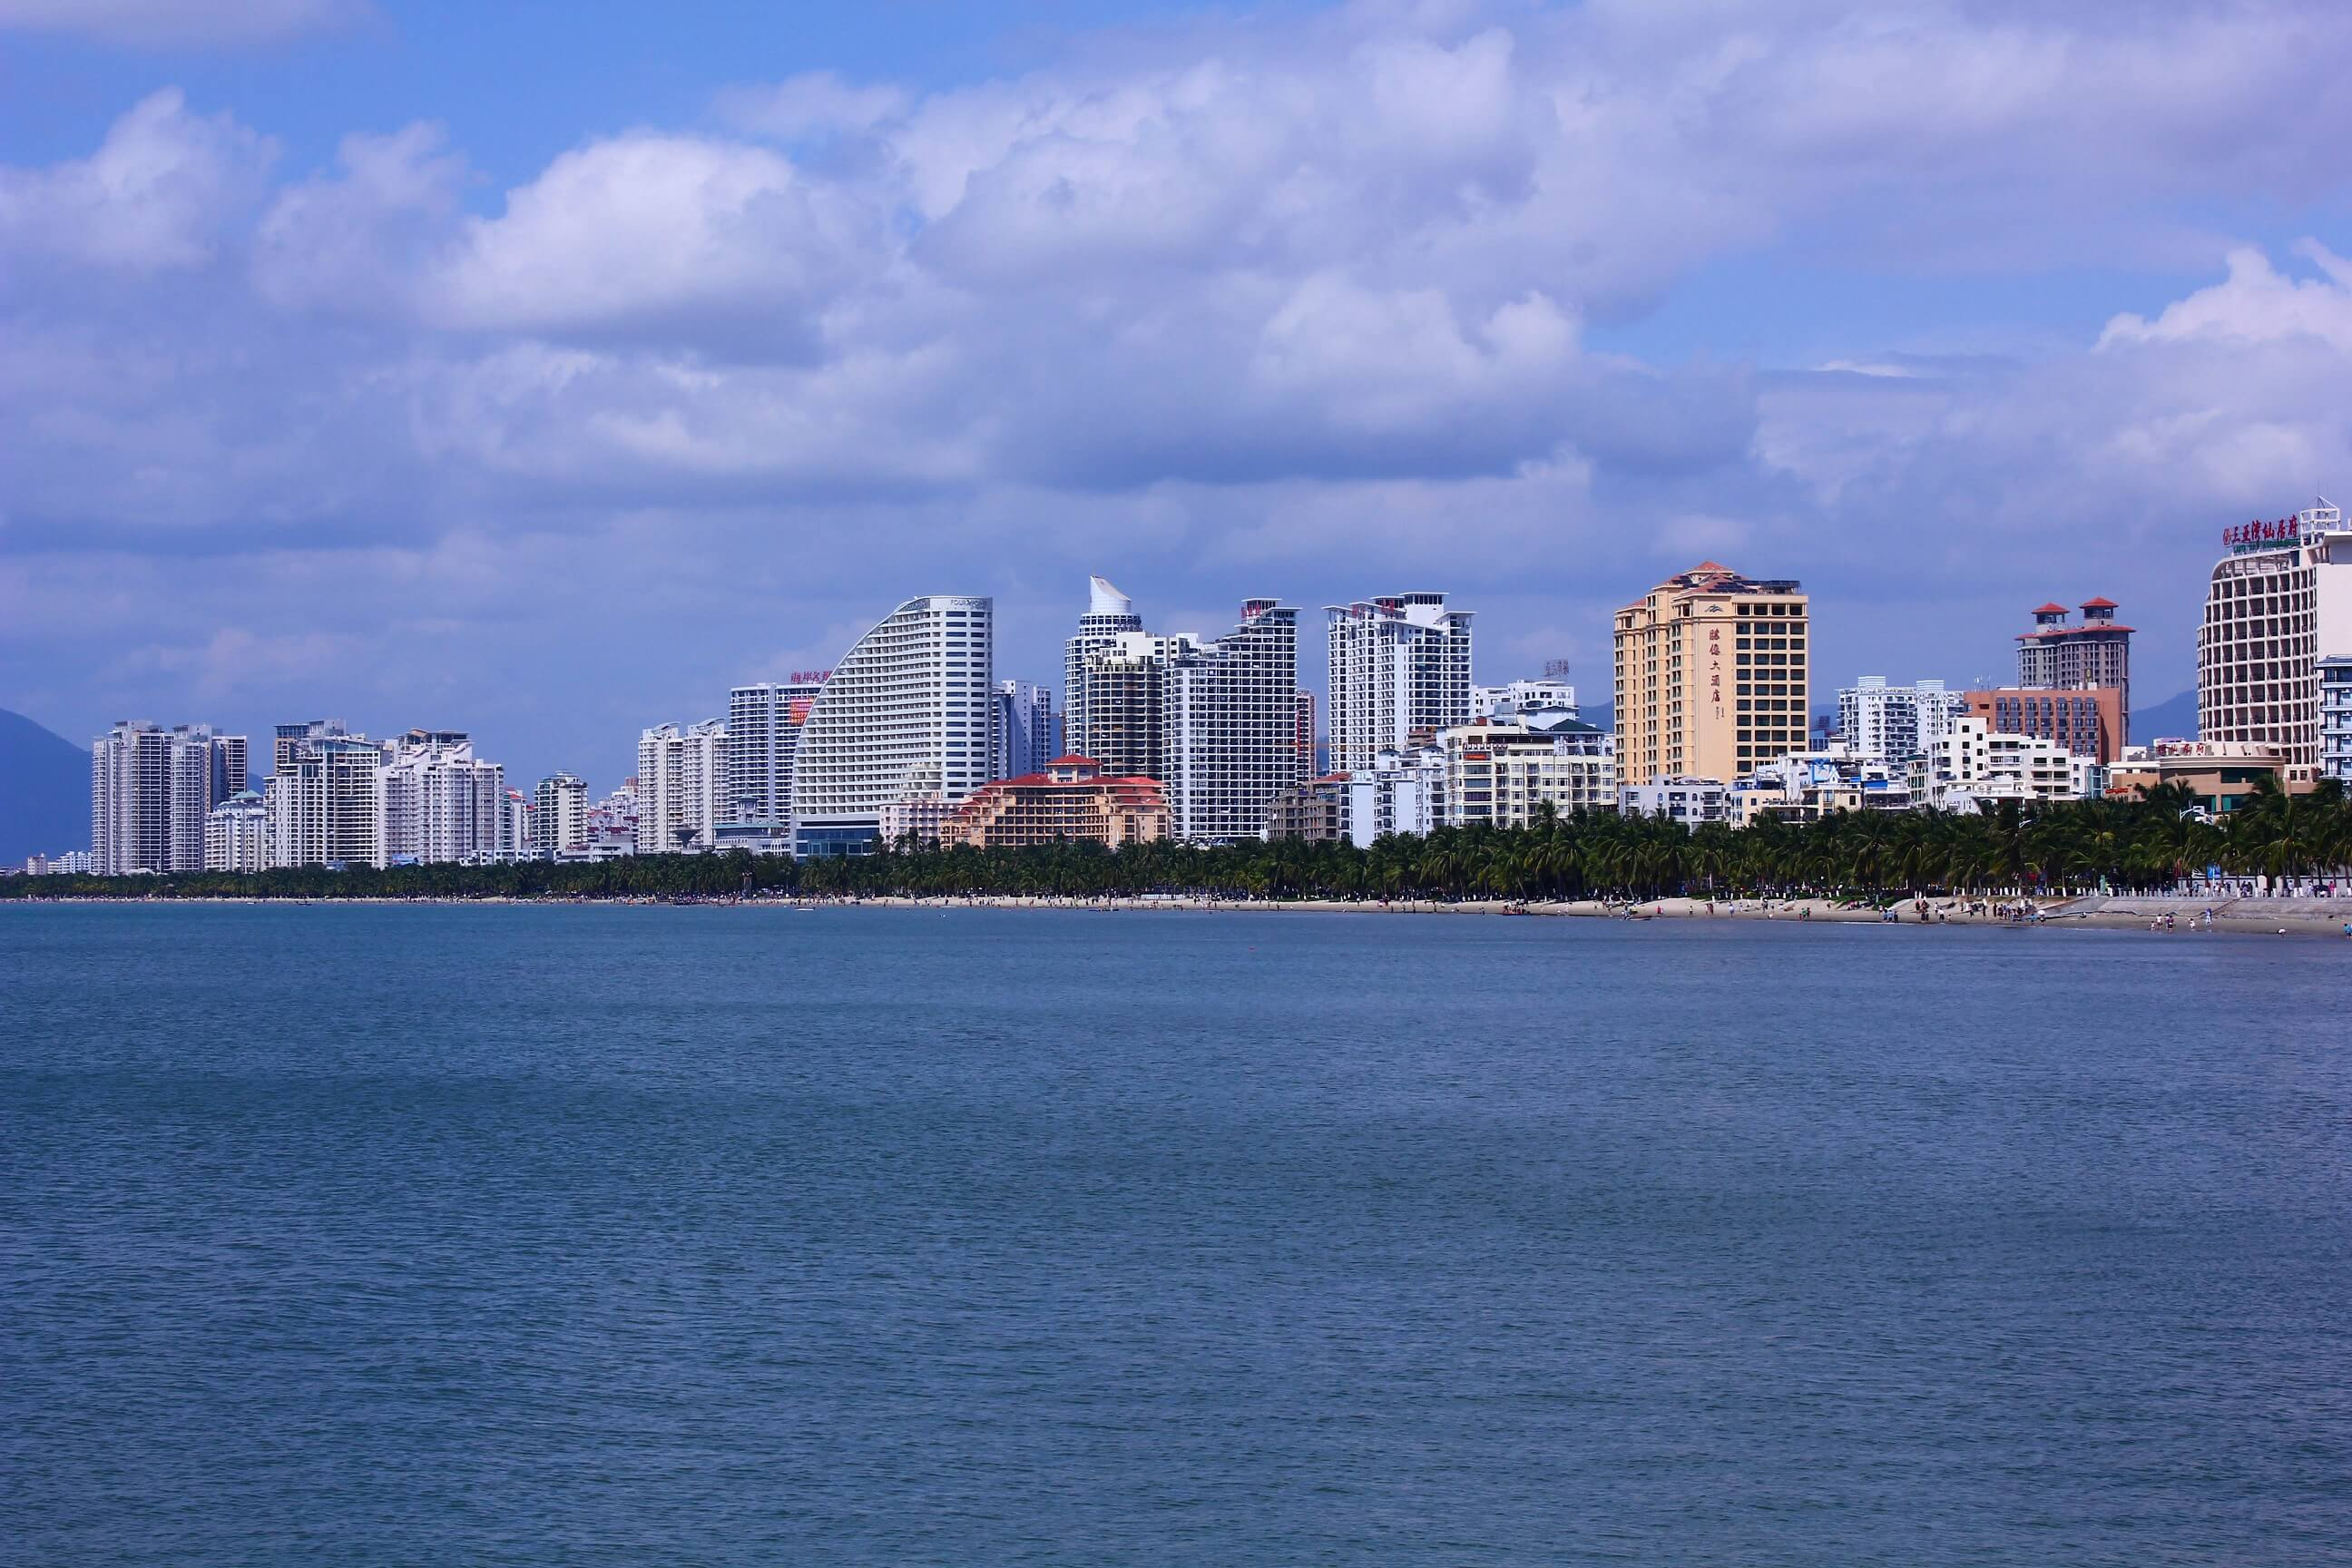 Hainan resort town set to become China's first language barrier-free international city